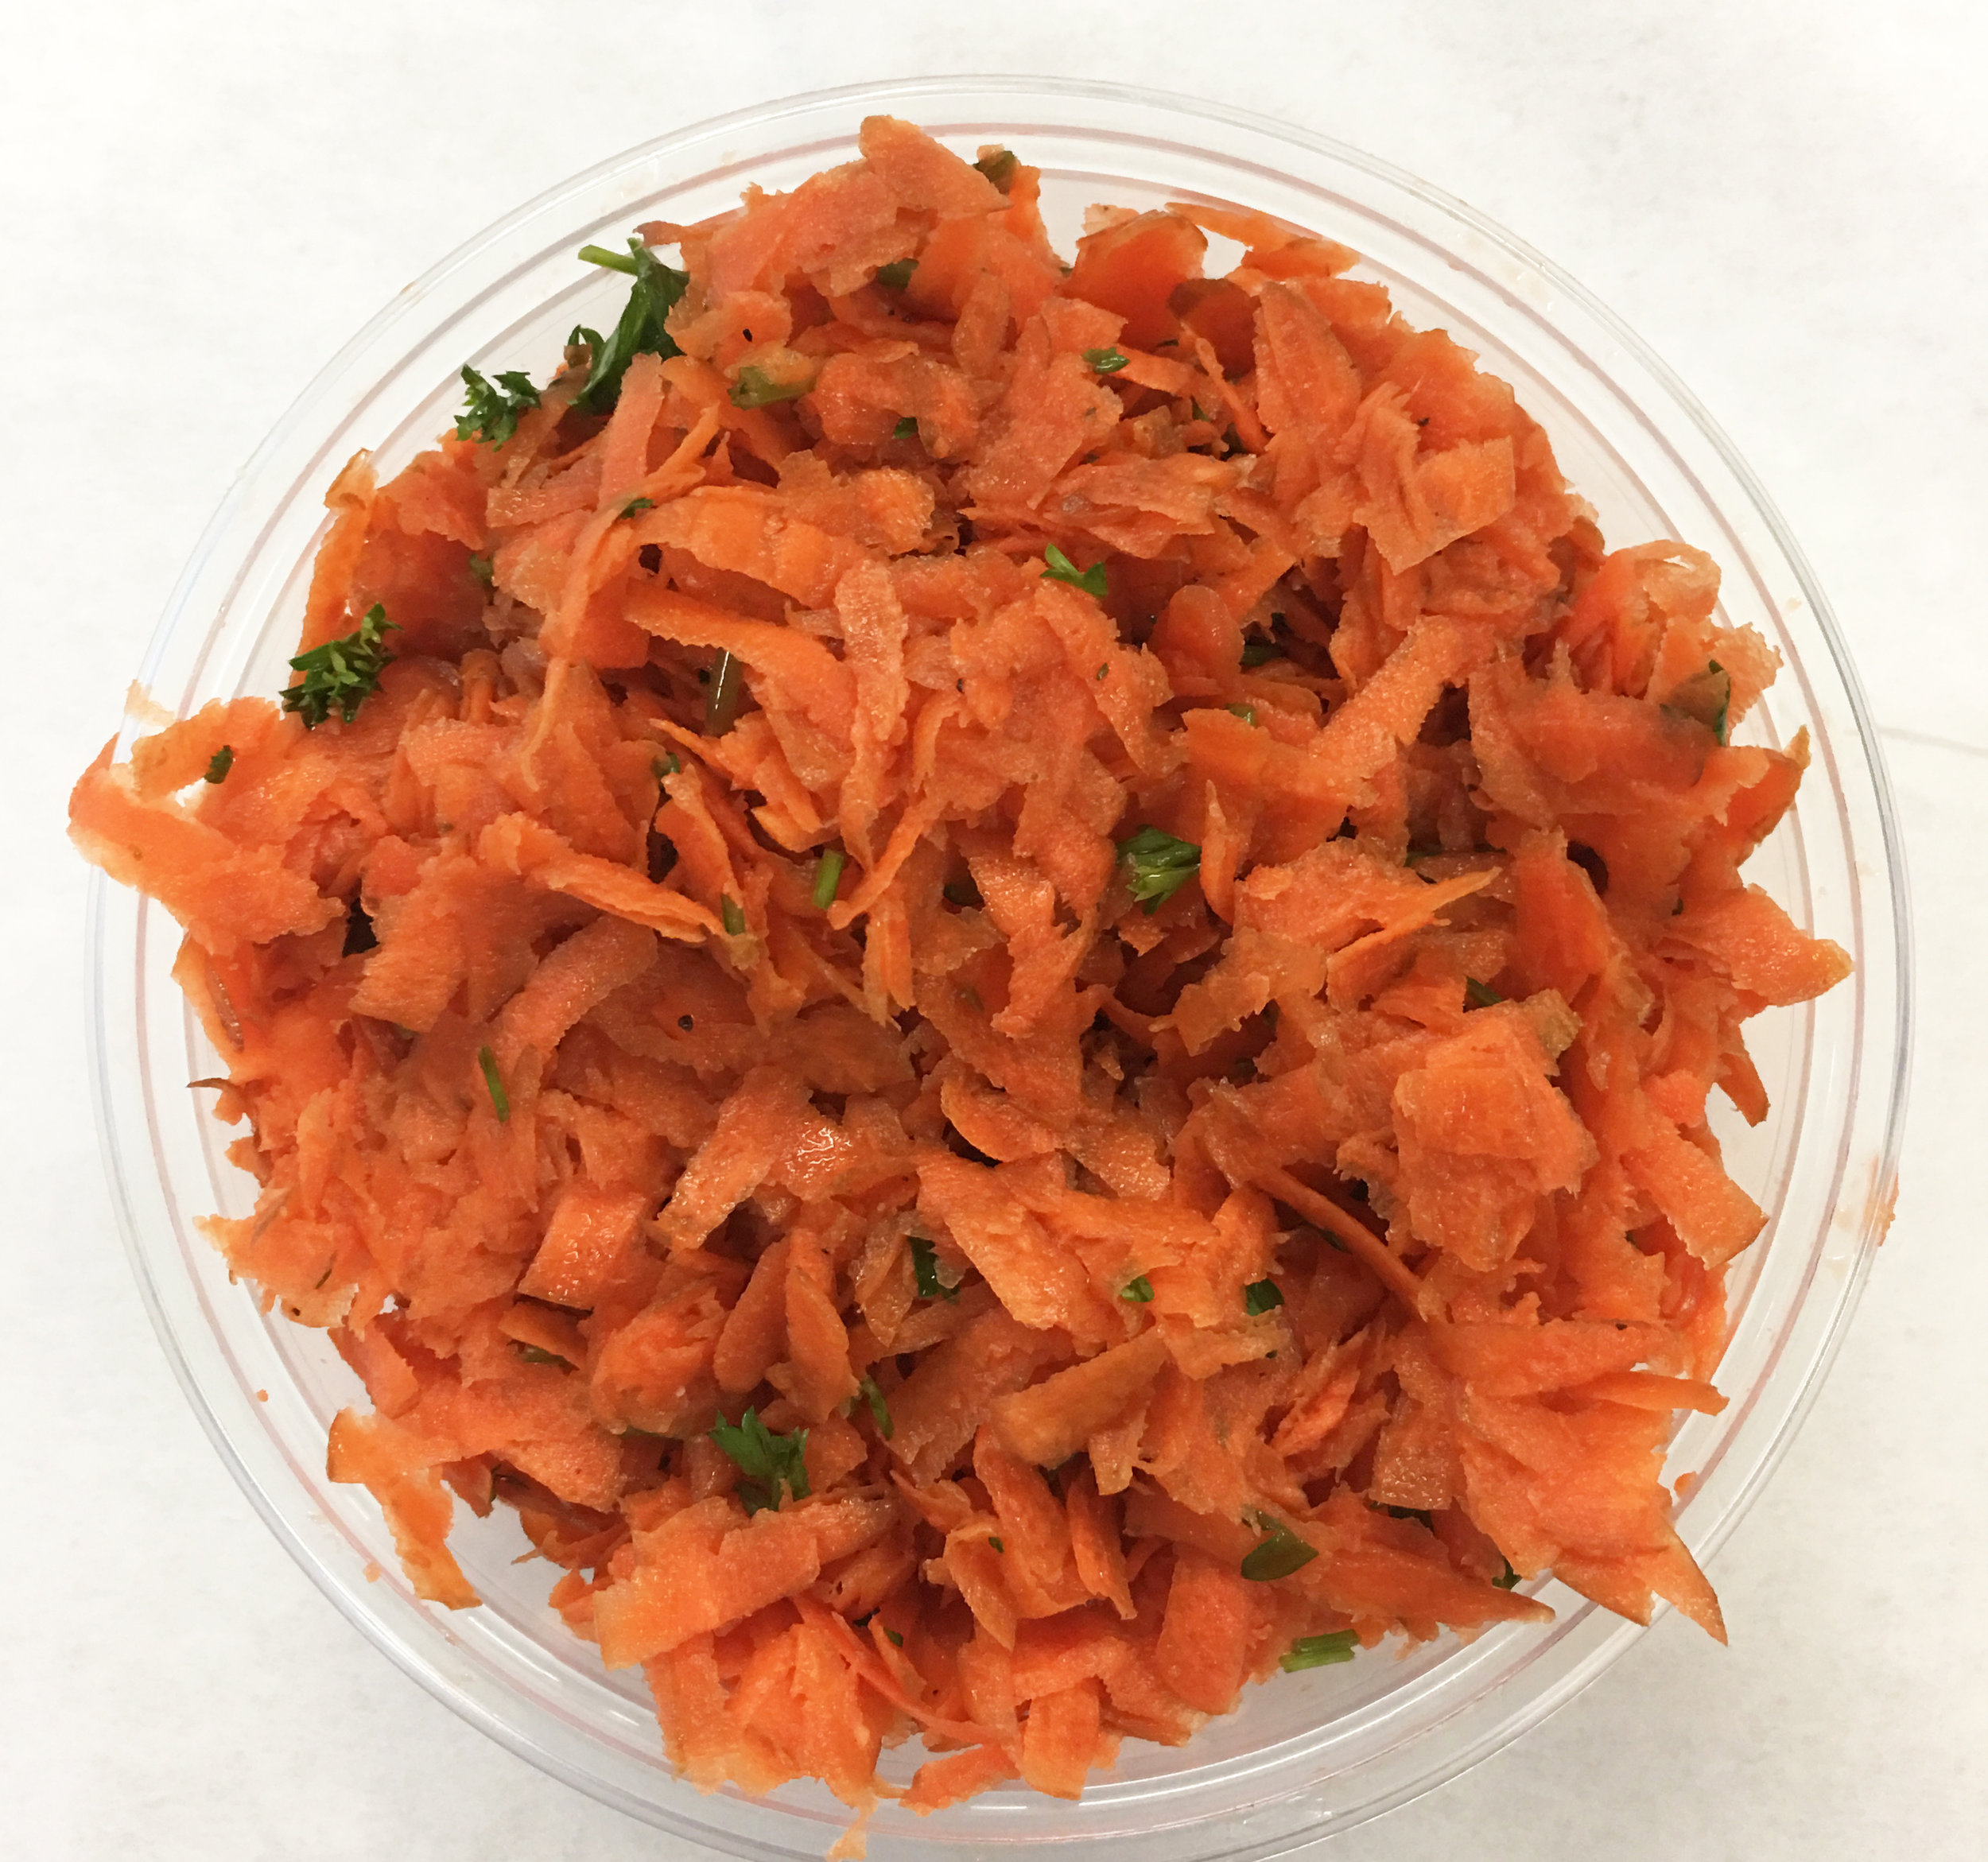 Shredded carrot and scallions with wild kelp (seaweed).